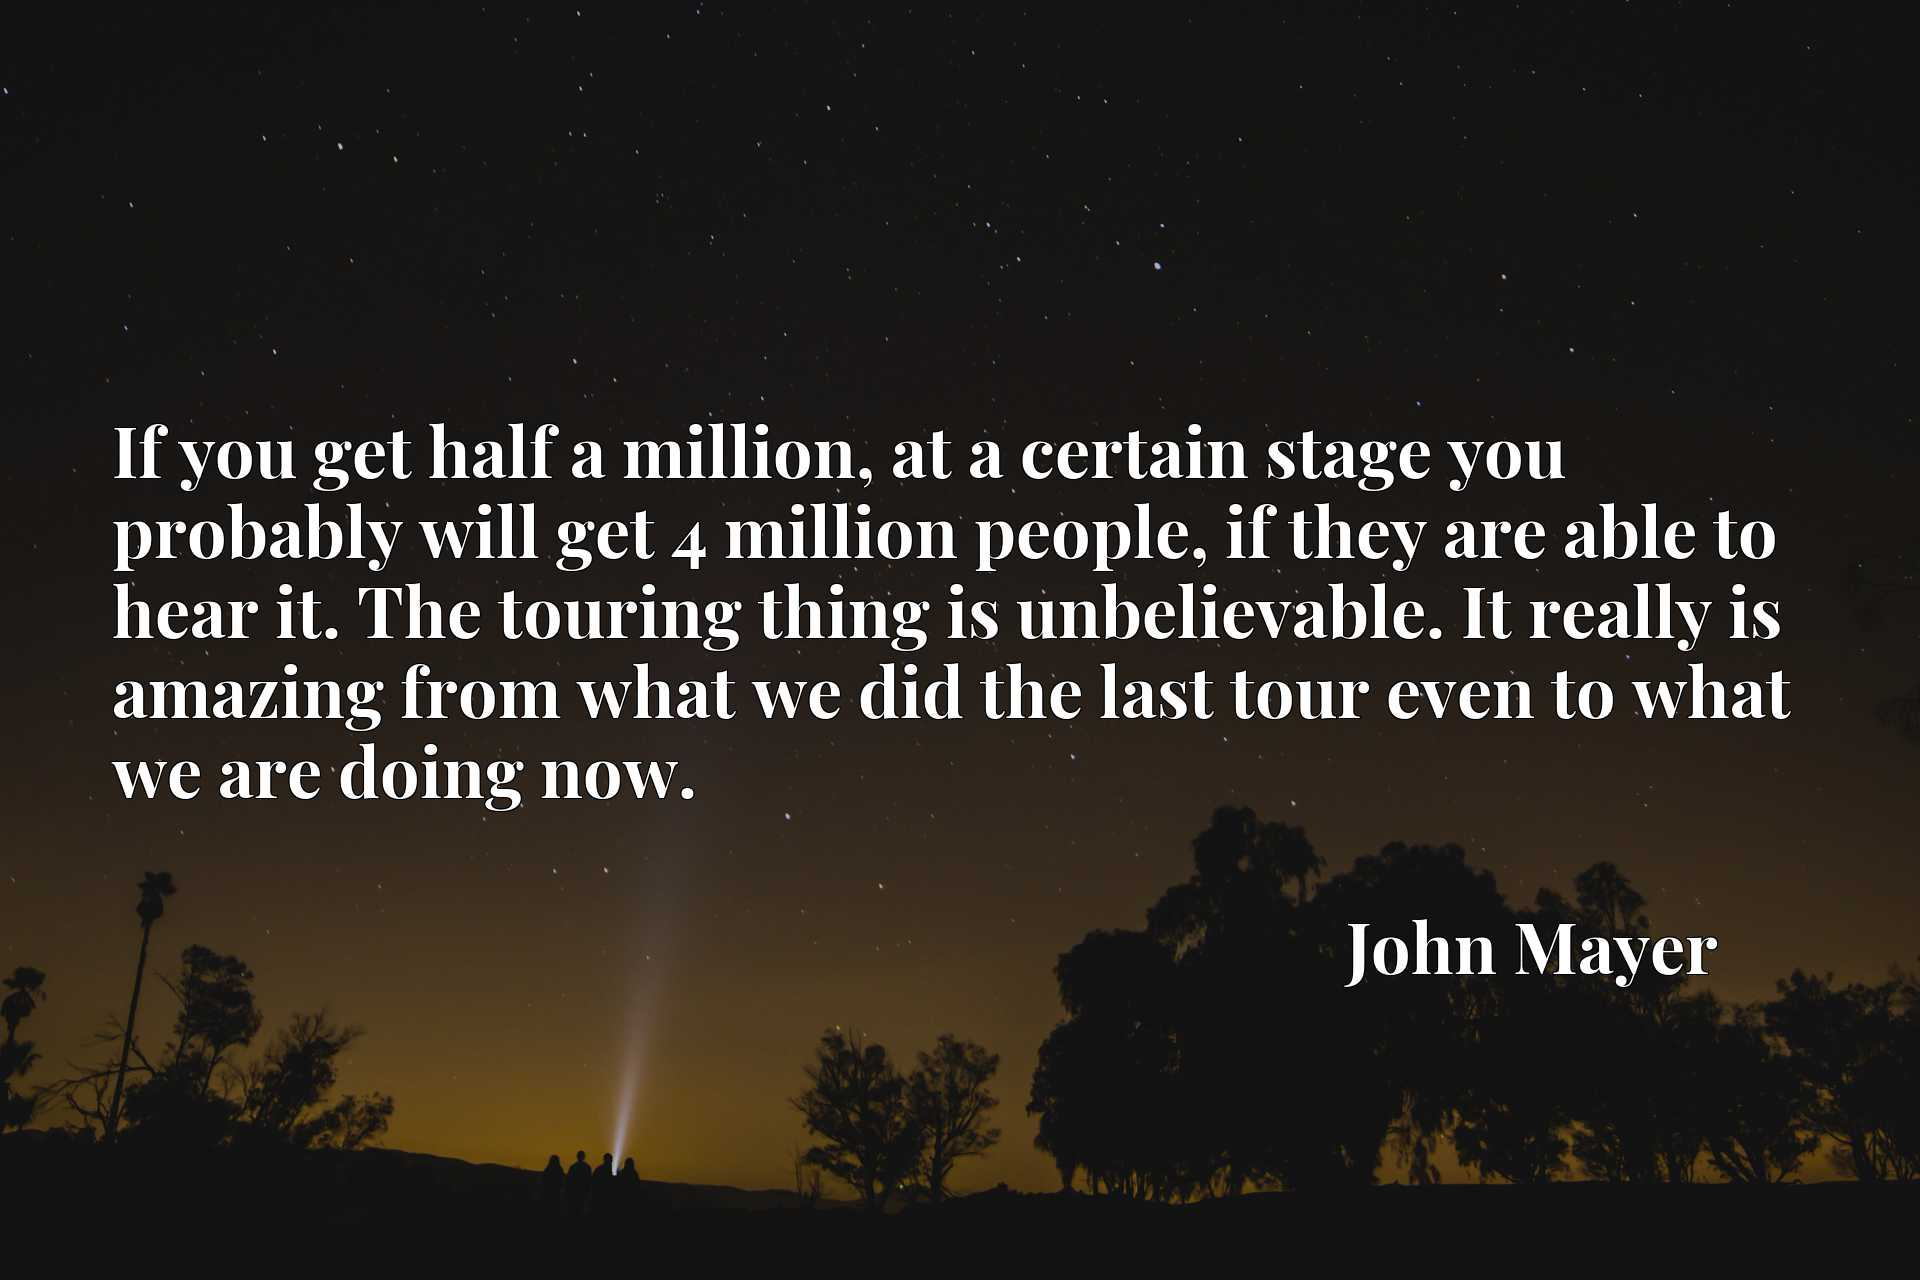 If you get half a million, at a certain stage you probably will get 4 million people, if they are able to hear it. The touring thing is unbelievable. It really is amazing from what we did the last tour even to what we are doing now.